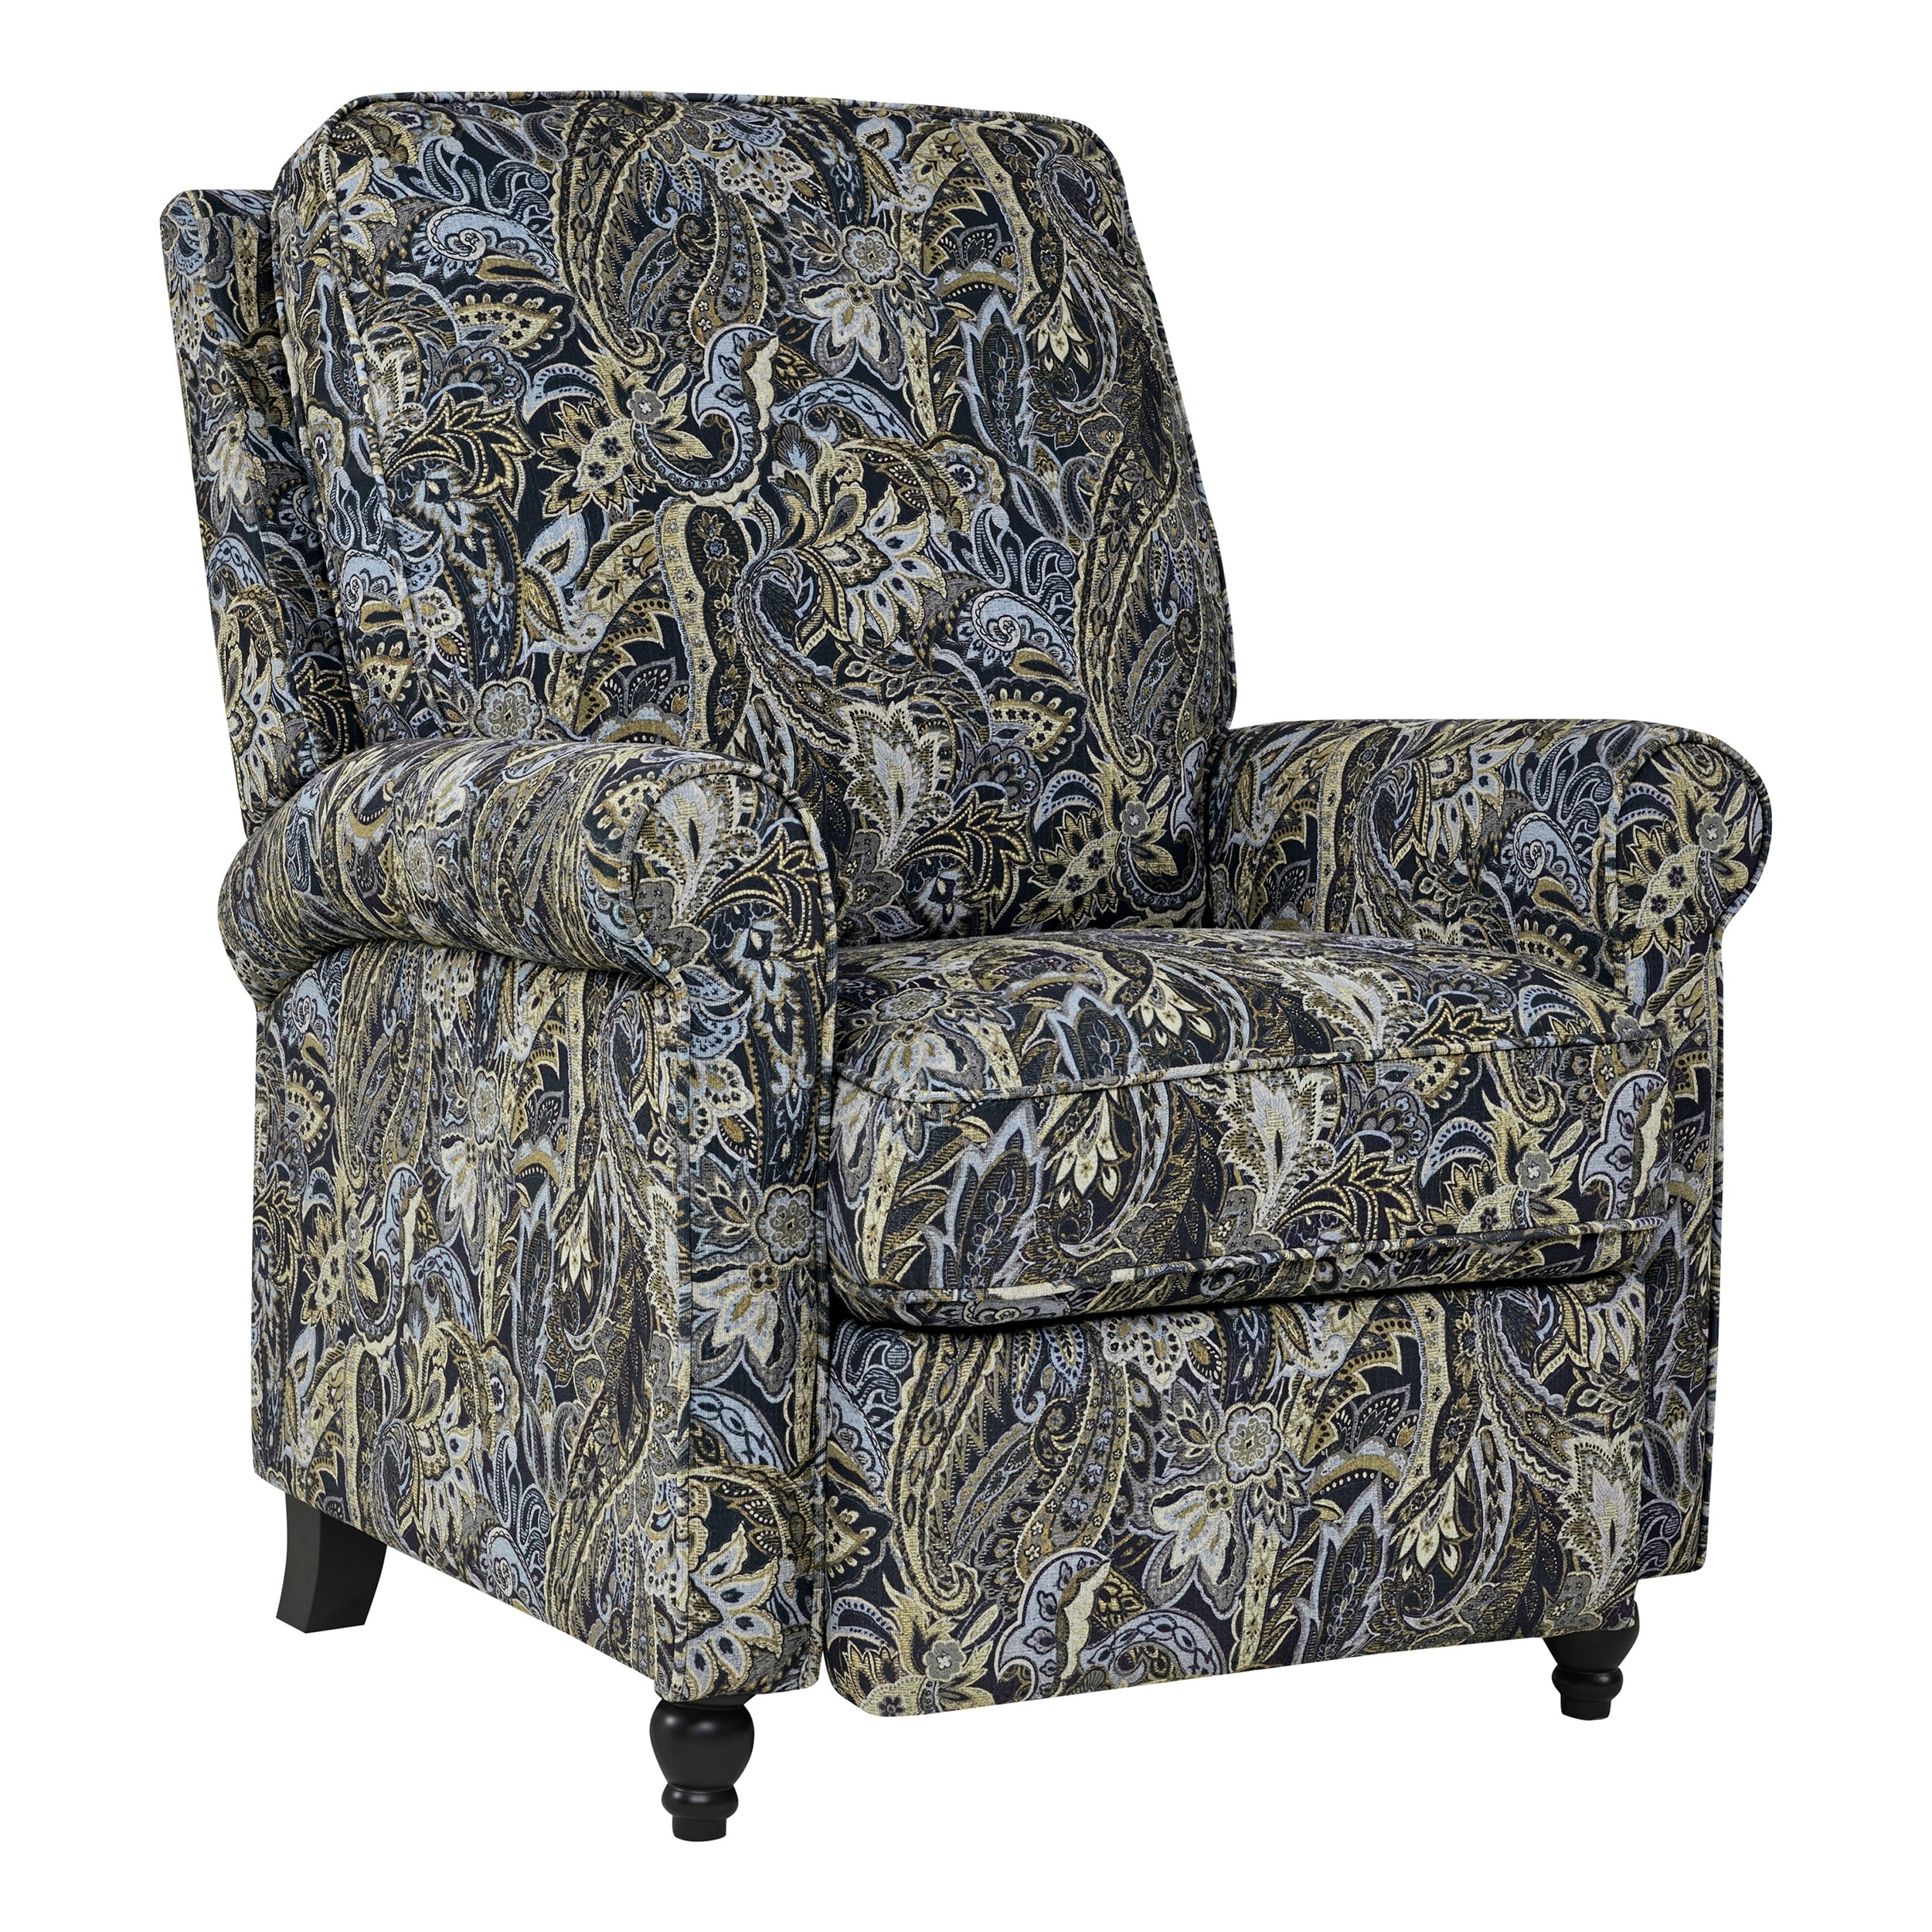 Shop ProLounger Blue Paisley Velvet Push Back Recliner Chair   On Sale    Free Shipping Today   Overstock.com   22964605